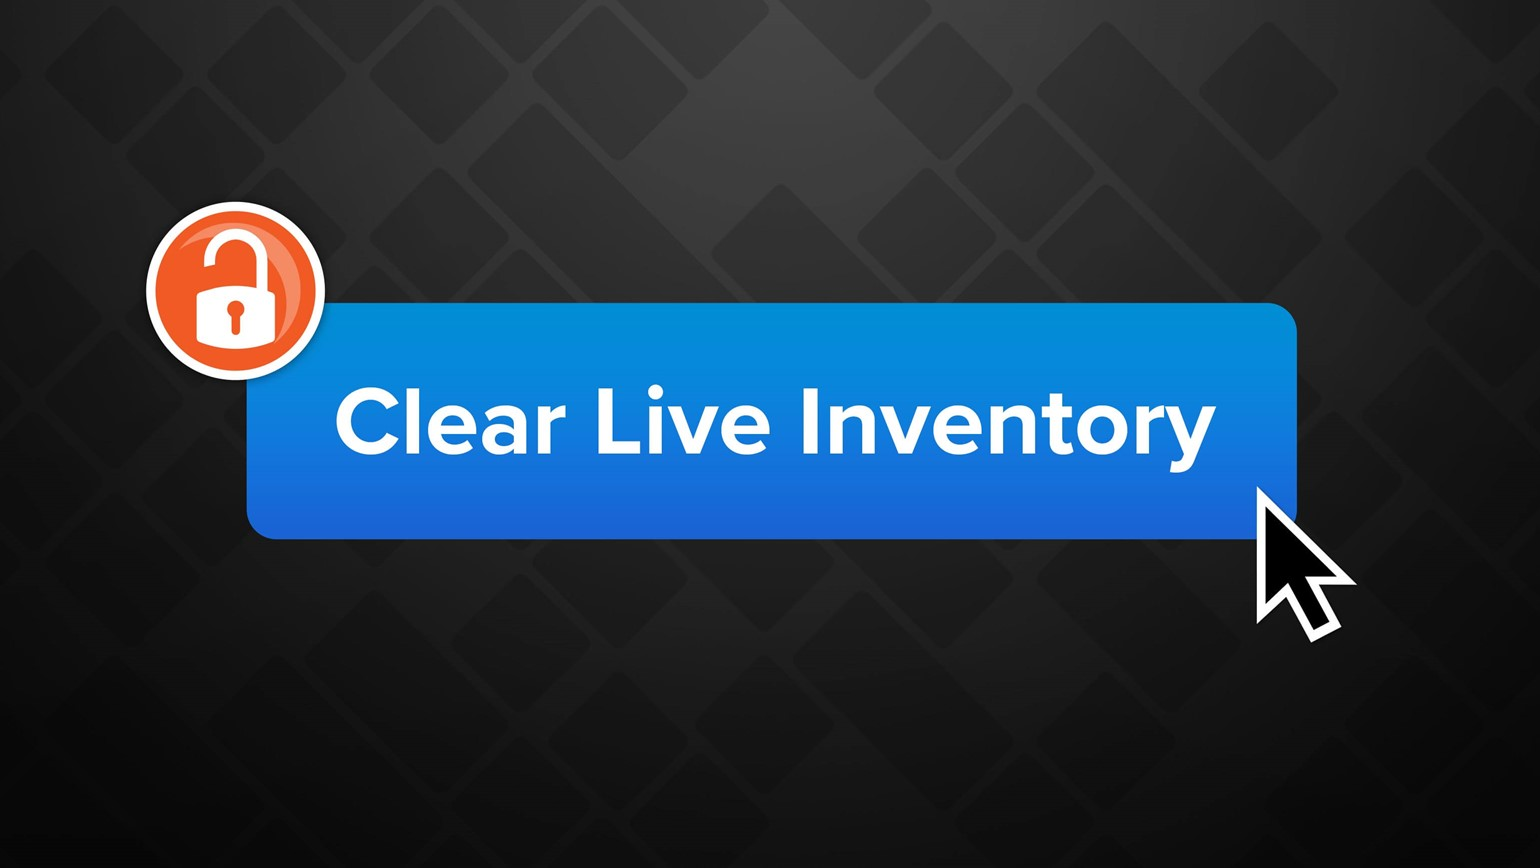 Clearing Your Live Inventory Just Got Easier